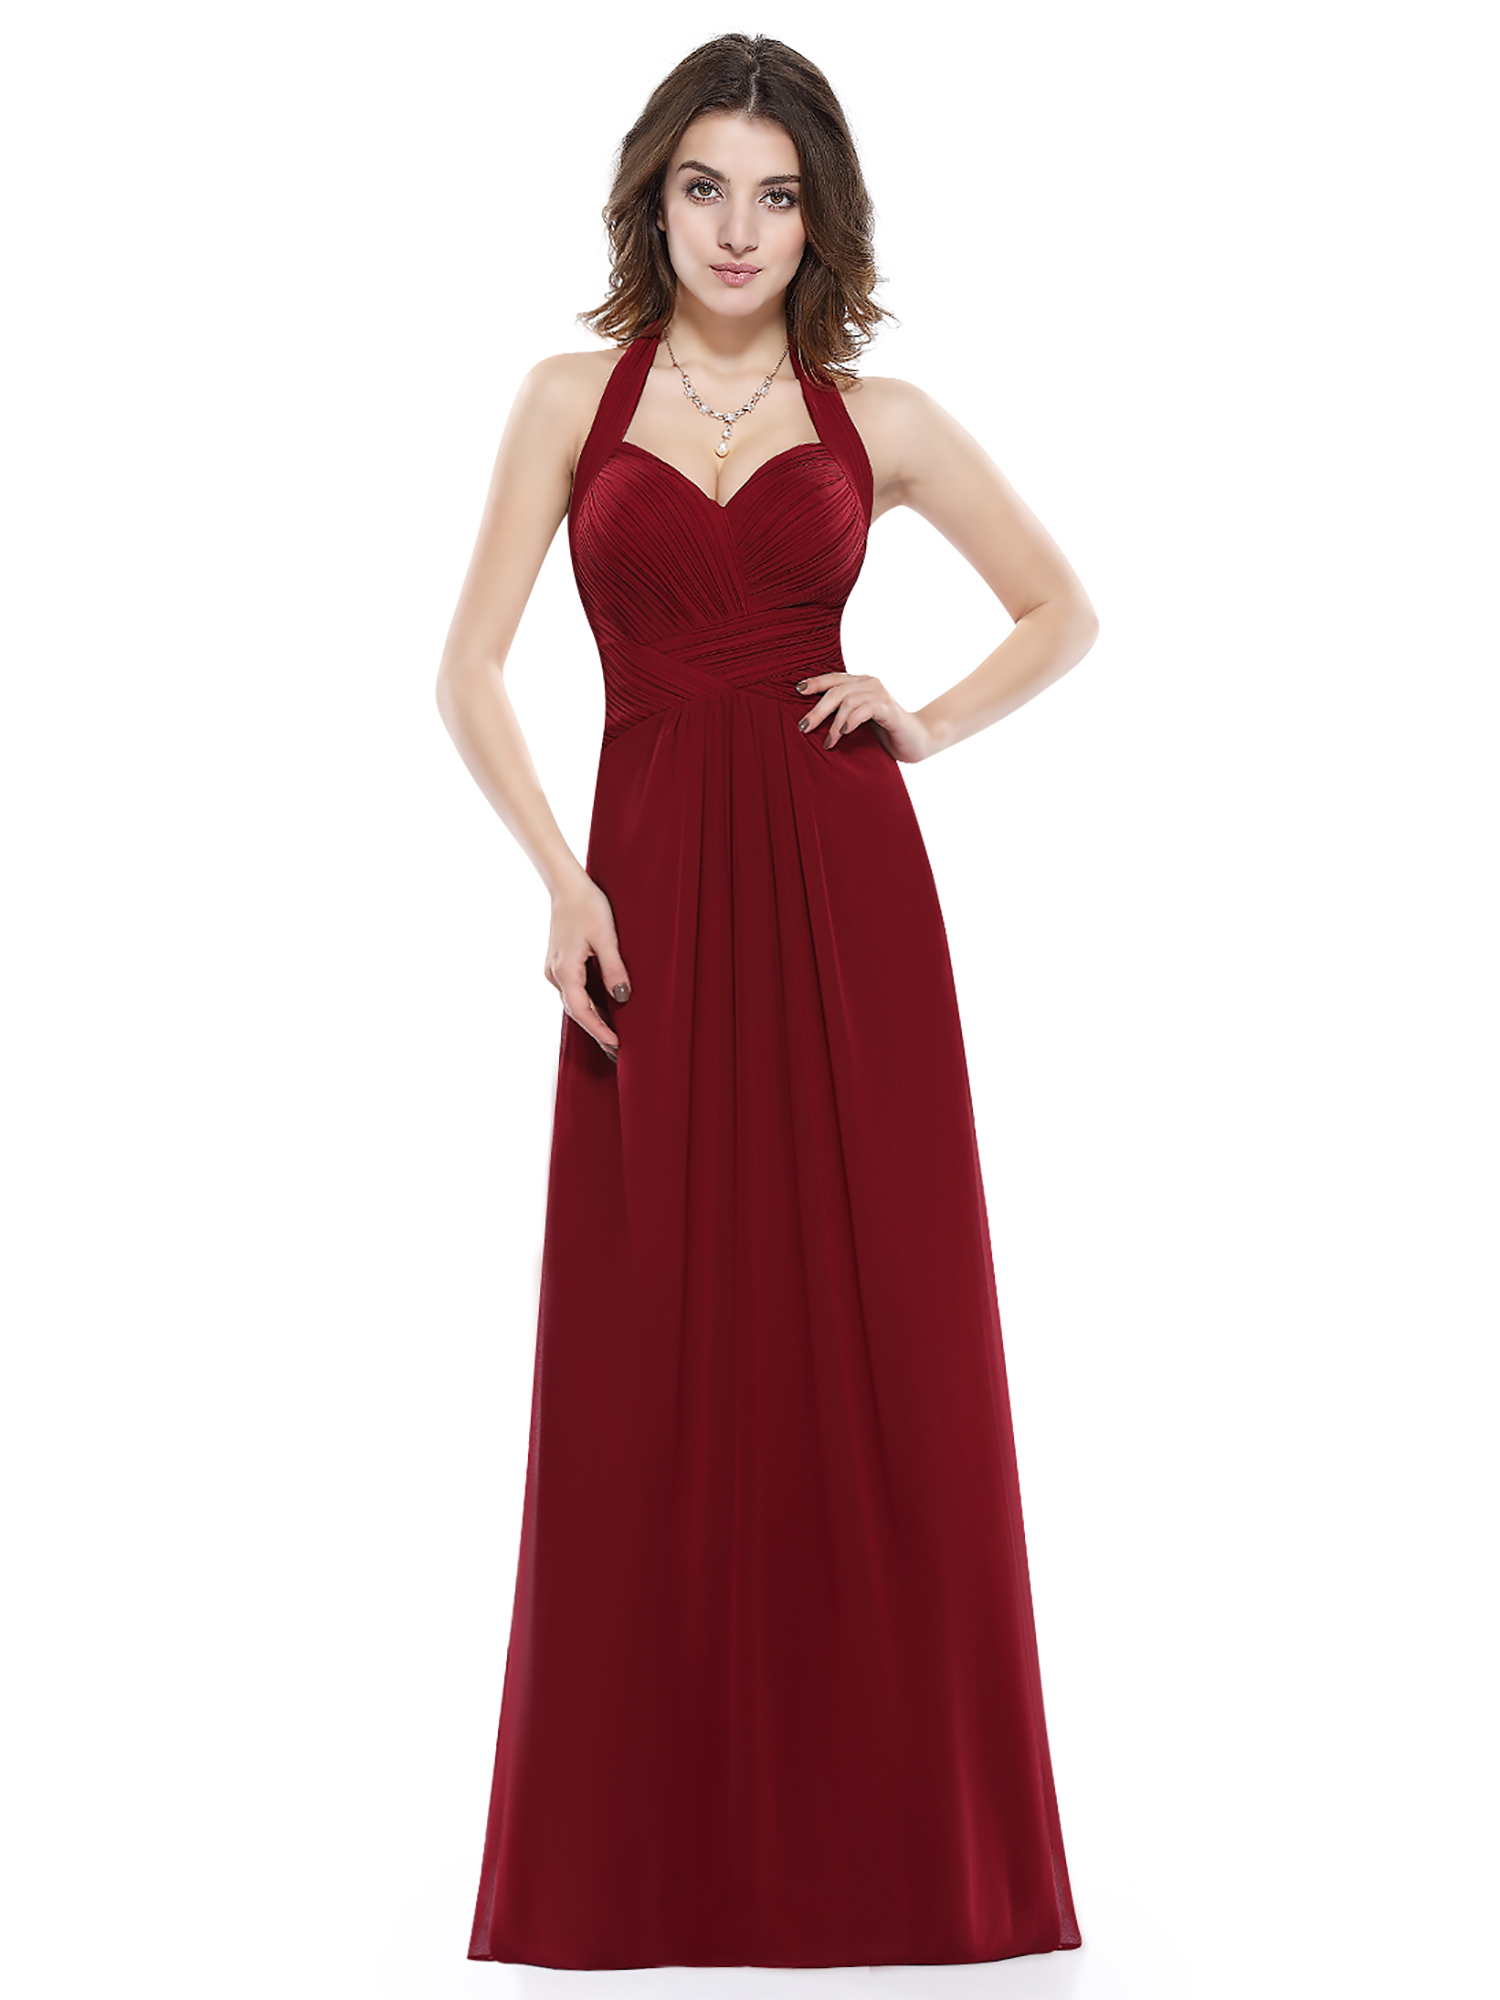 Women 39 s long sexy halter evening wedding bridesmaid prom for Formal dress for women wedding